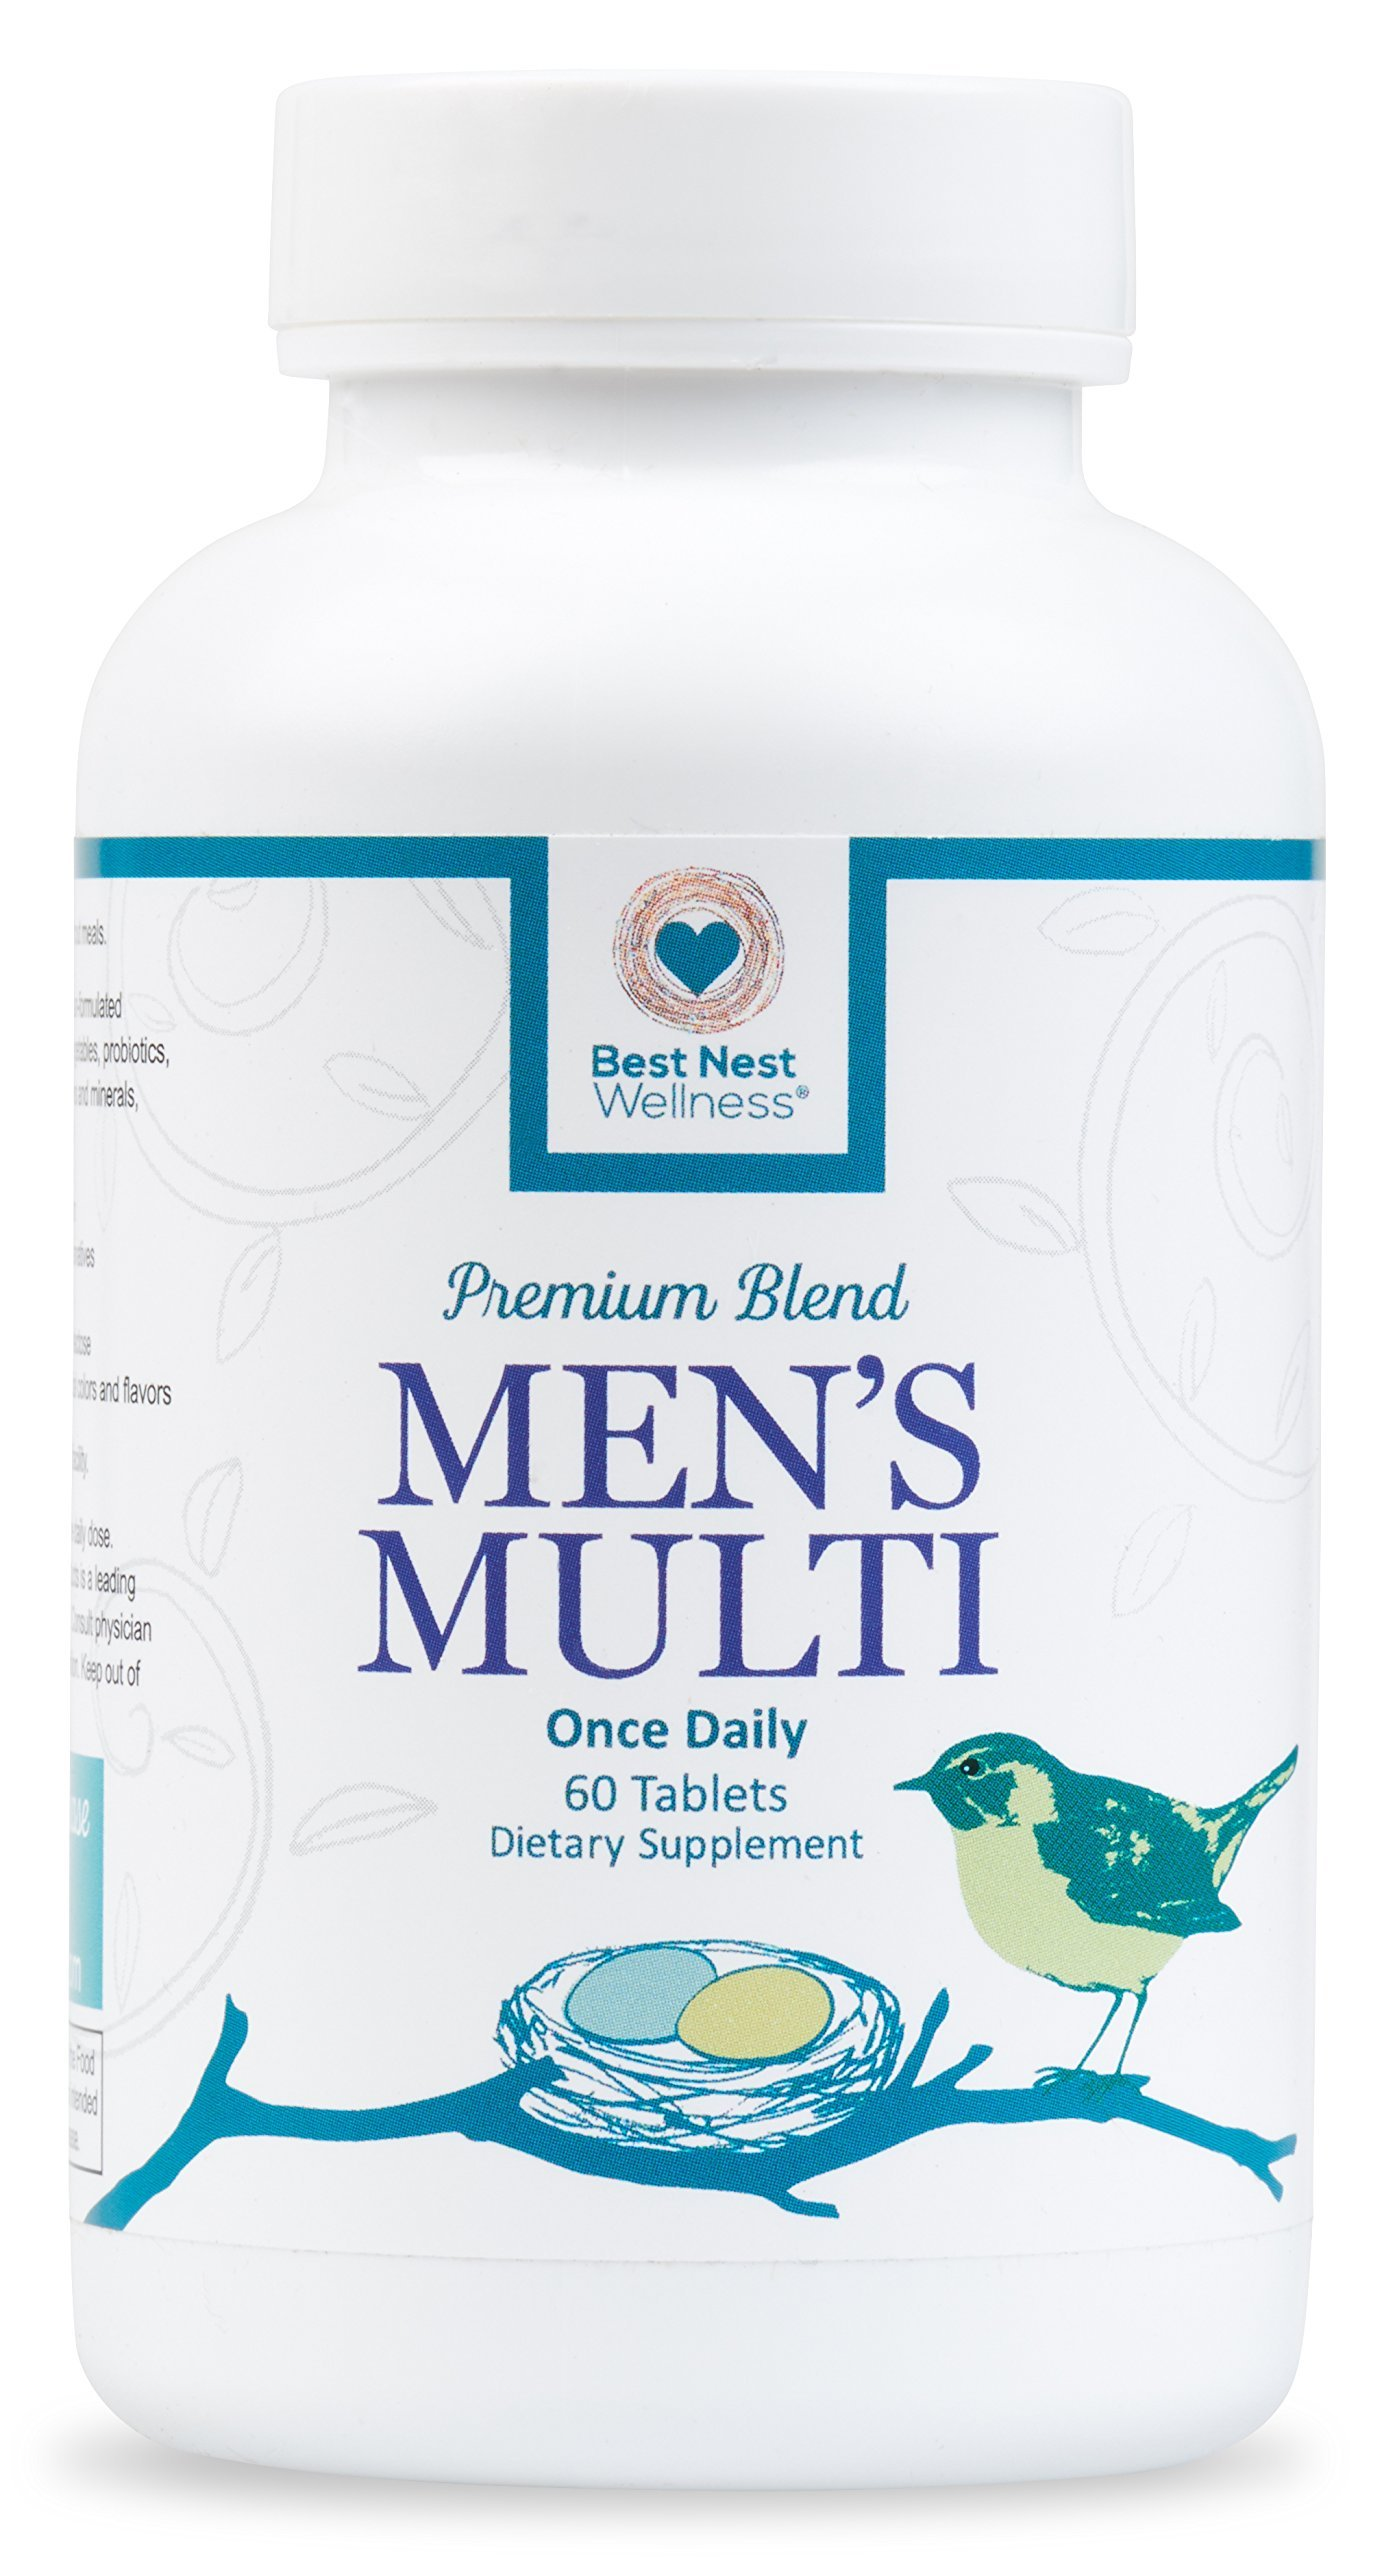 Best Nest Men's Multi | Methylfolate, Methylcobalamin (B12), Multivitamins, Probiotics, Made with 100% Natural Whole Food Organic Blend, Once Daily Multivitamin Supplement, 60 Tablets